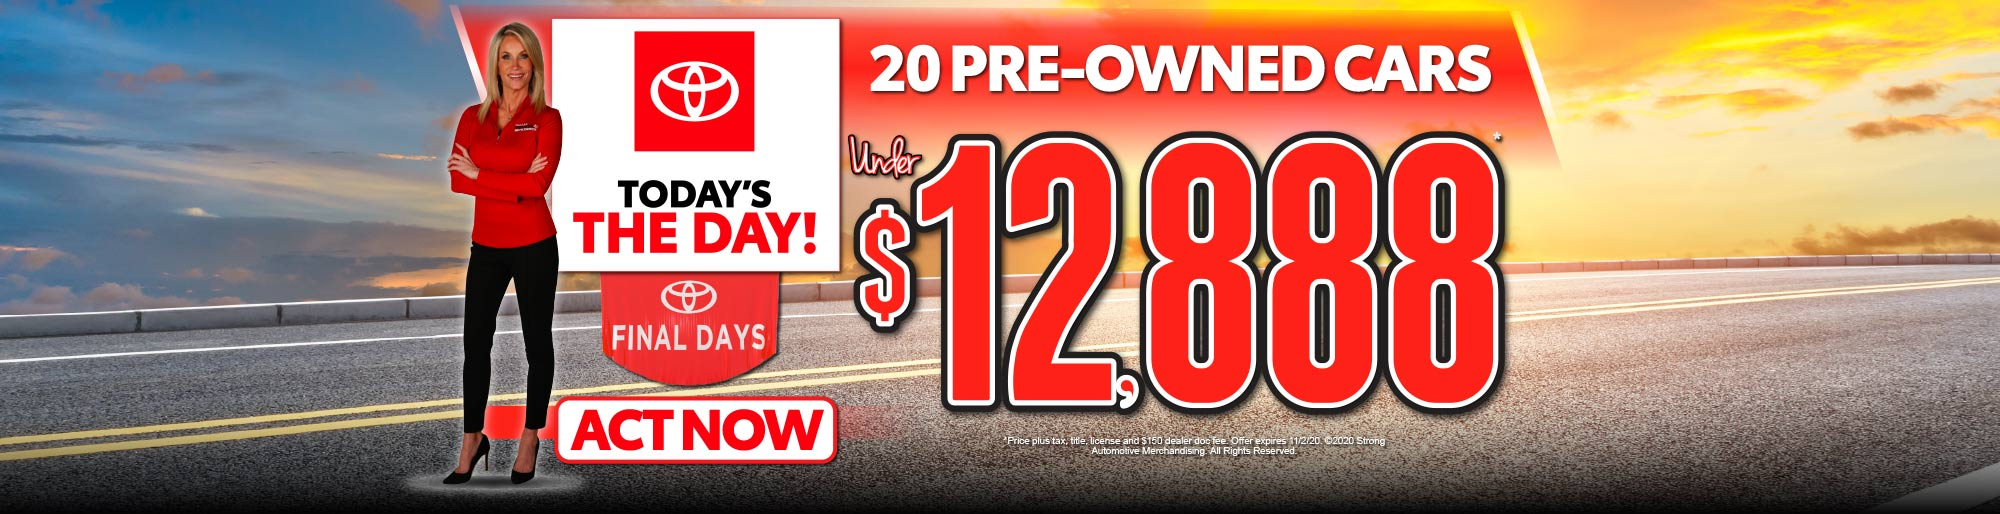 20 PREOWNED CARS UNDER $12,888* - ACT NOW